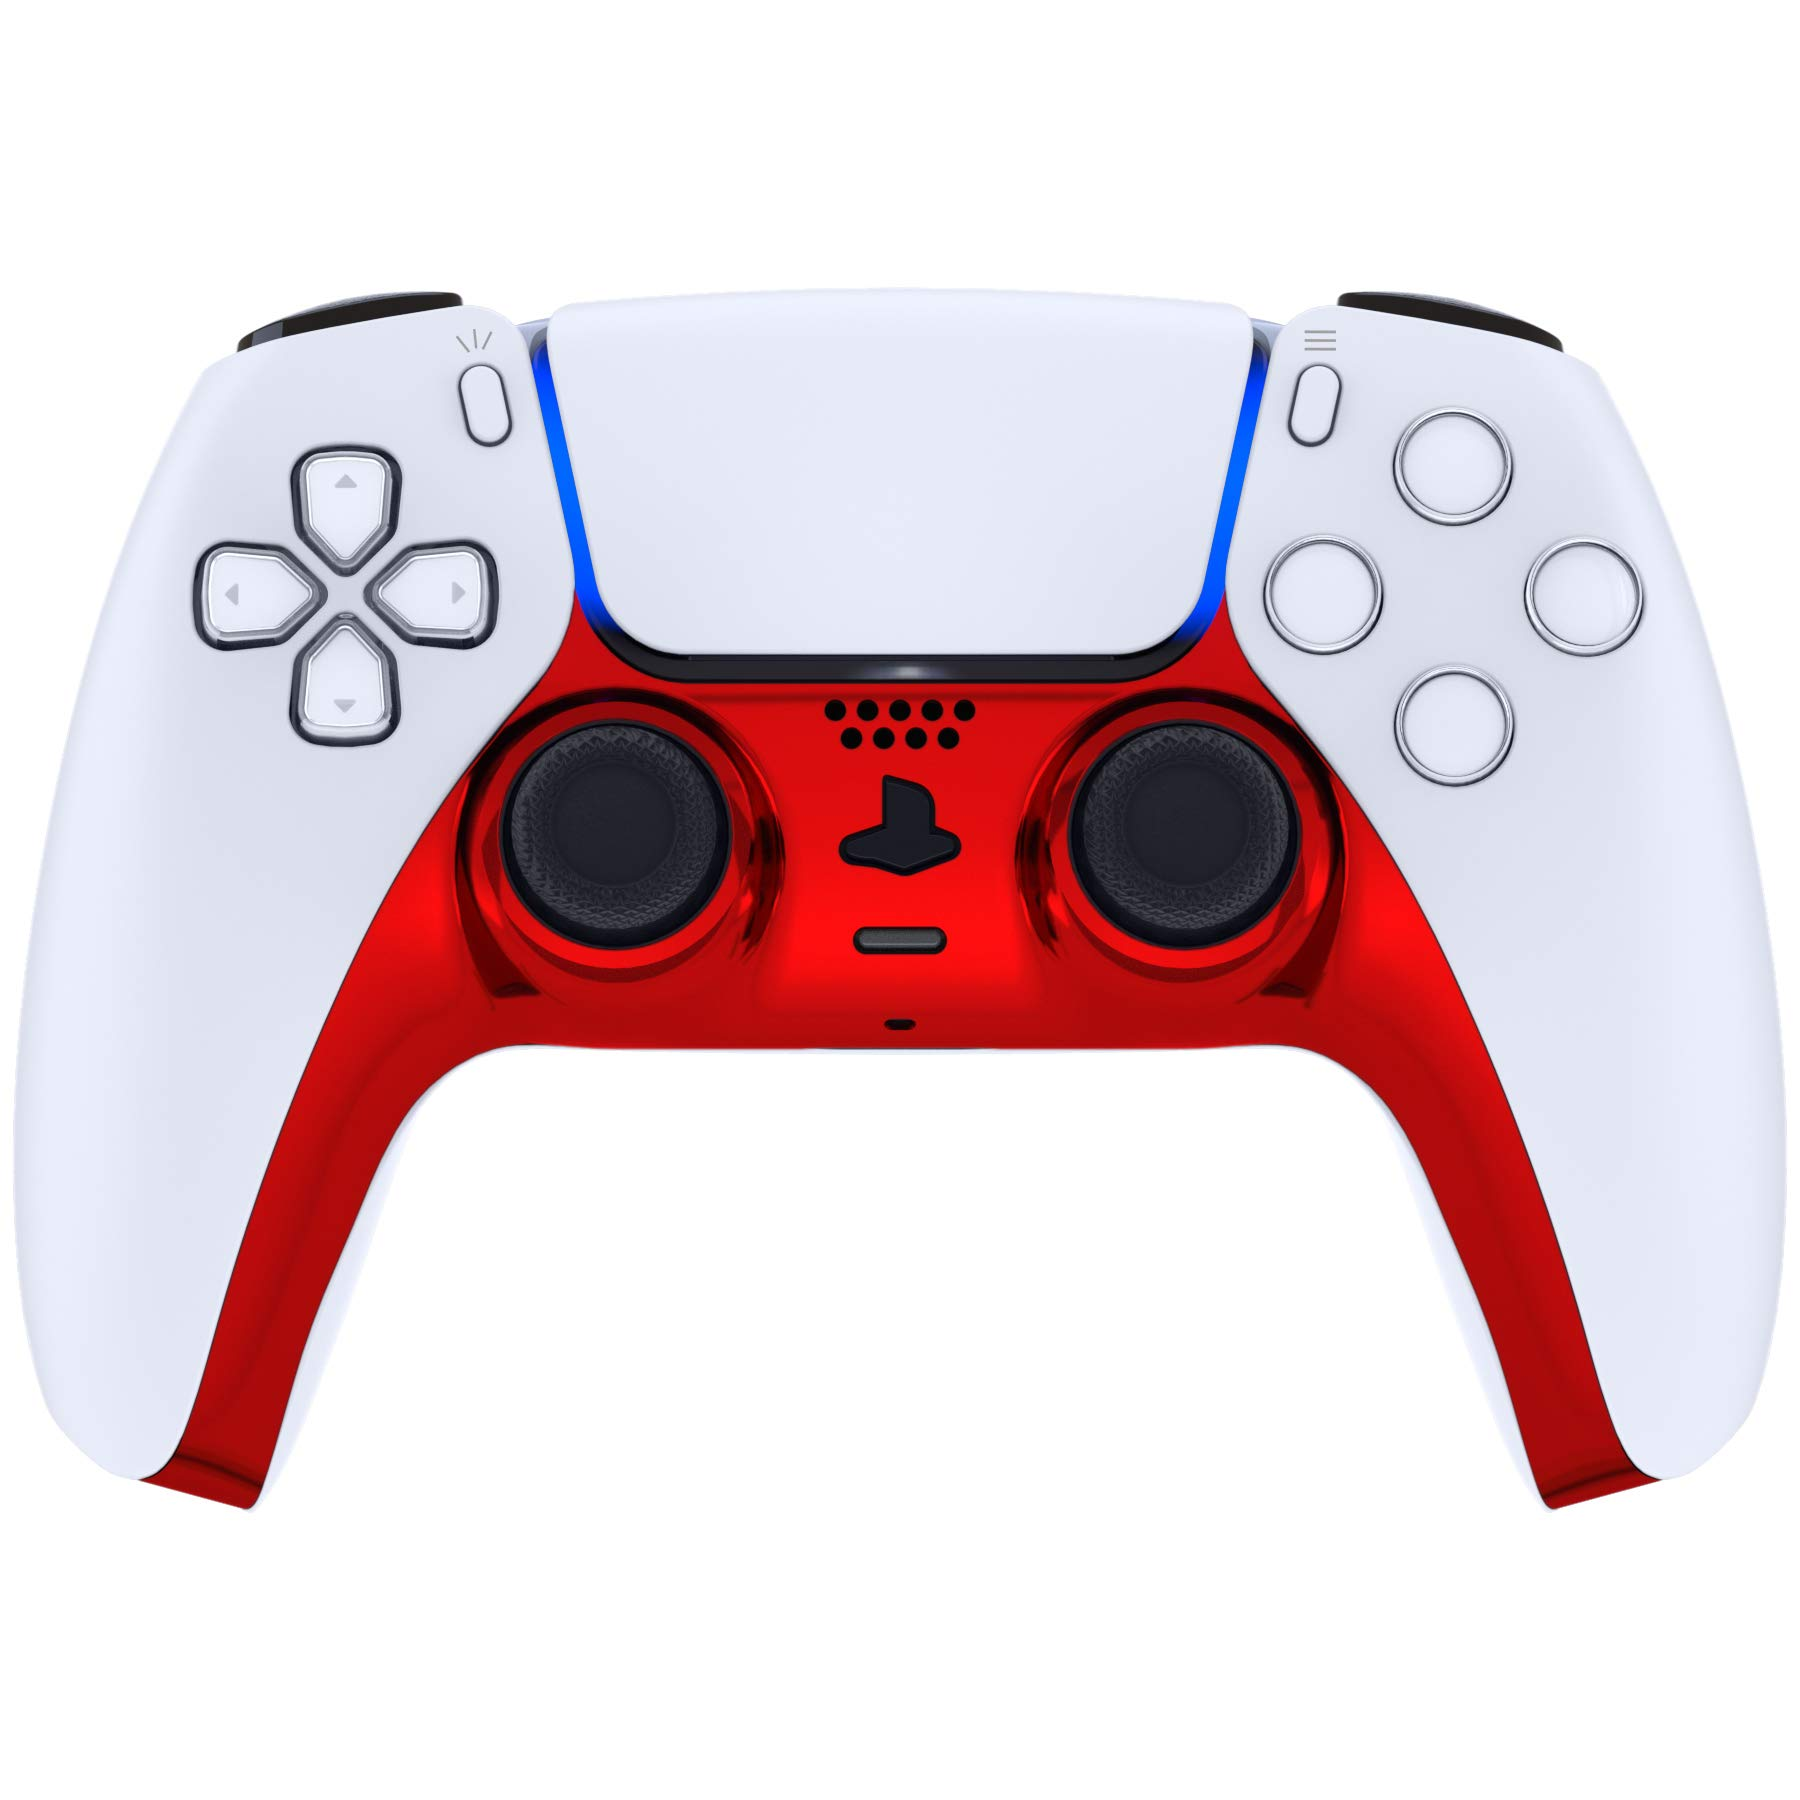 eXtremeRate Chrome Red Glossy Decorative Trim Shell for DualSense 5 Controller, DIY Replacement Clip Shell for PS5 Controller, Custom Plates Cover for Playstation 5 Controller w/Accent Rings